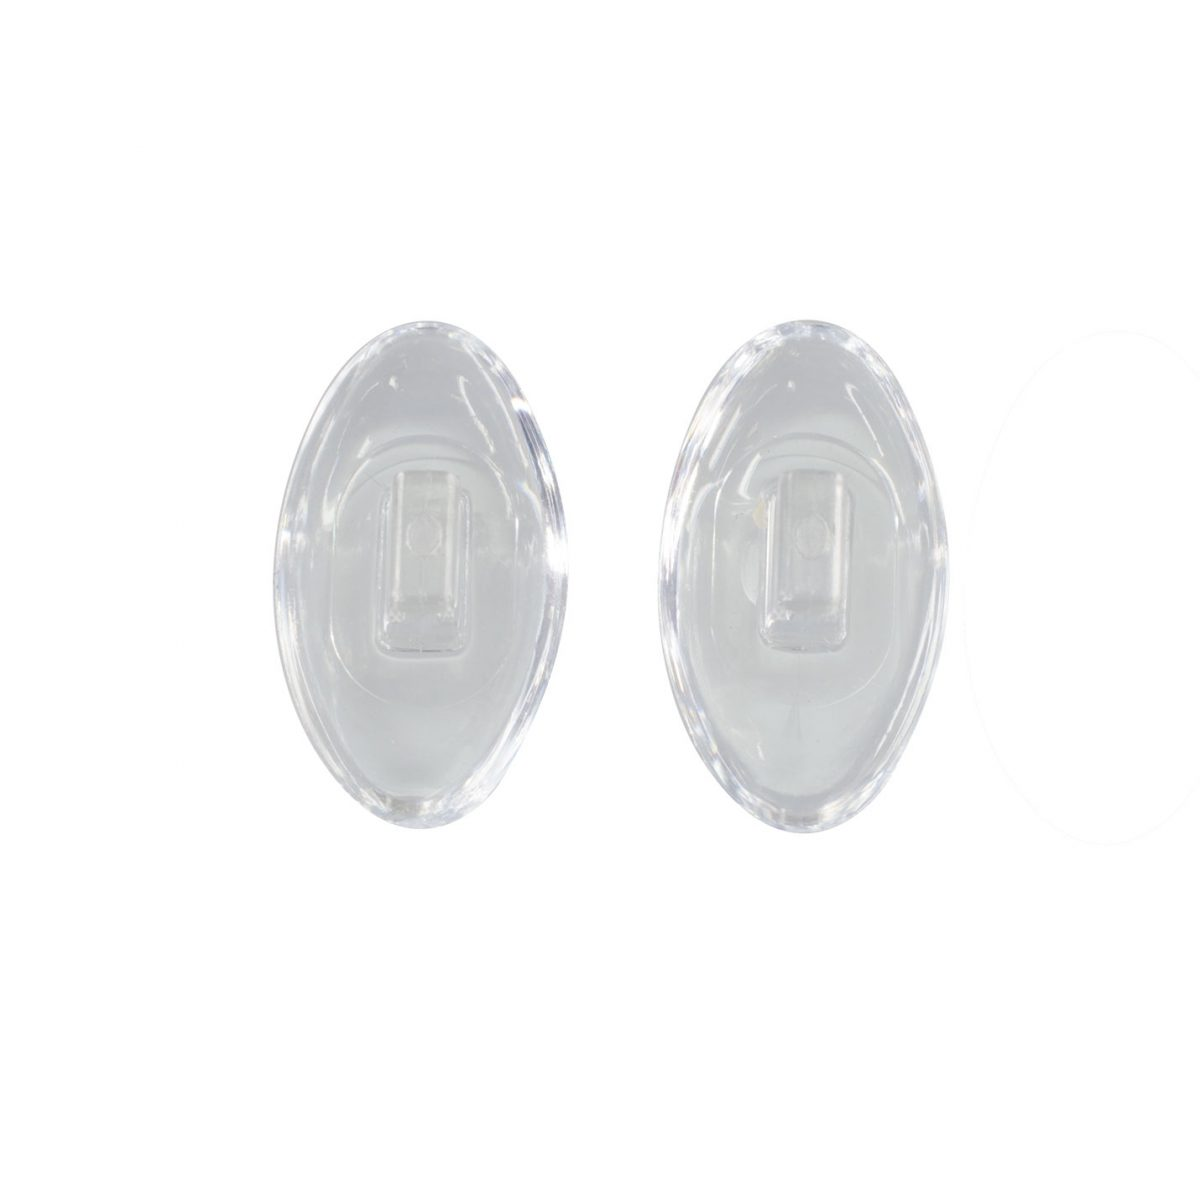 Symmetrical-PVC-Push-On-Nose-Pads-13mm